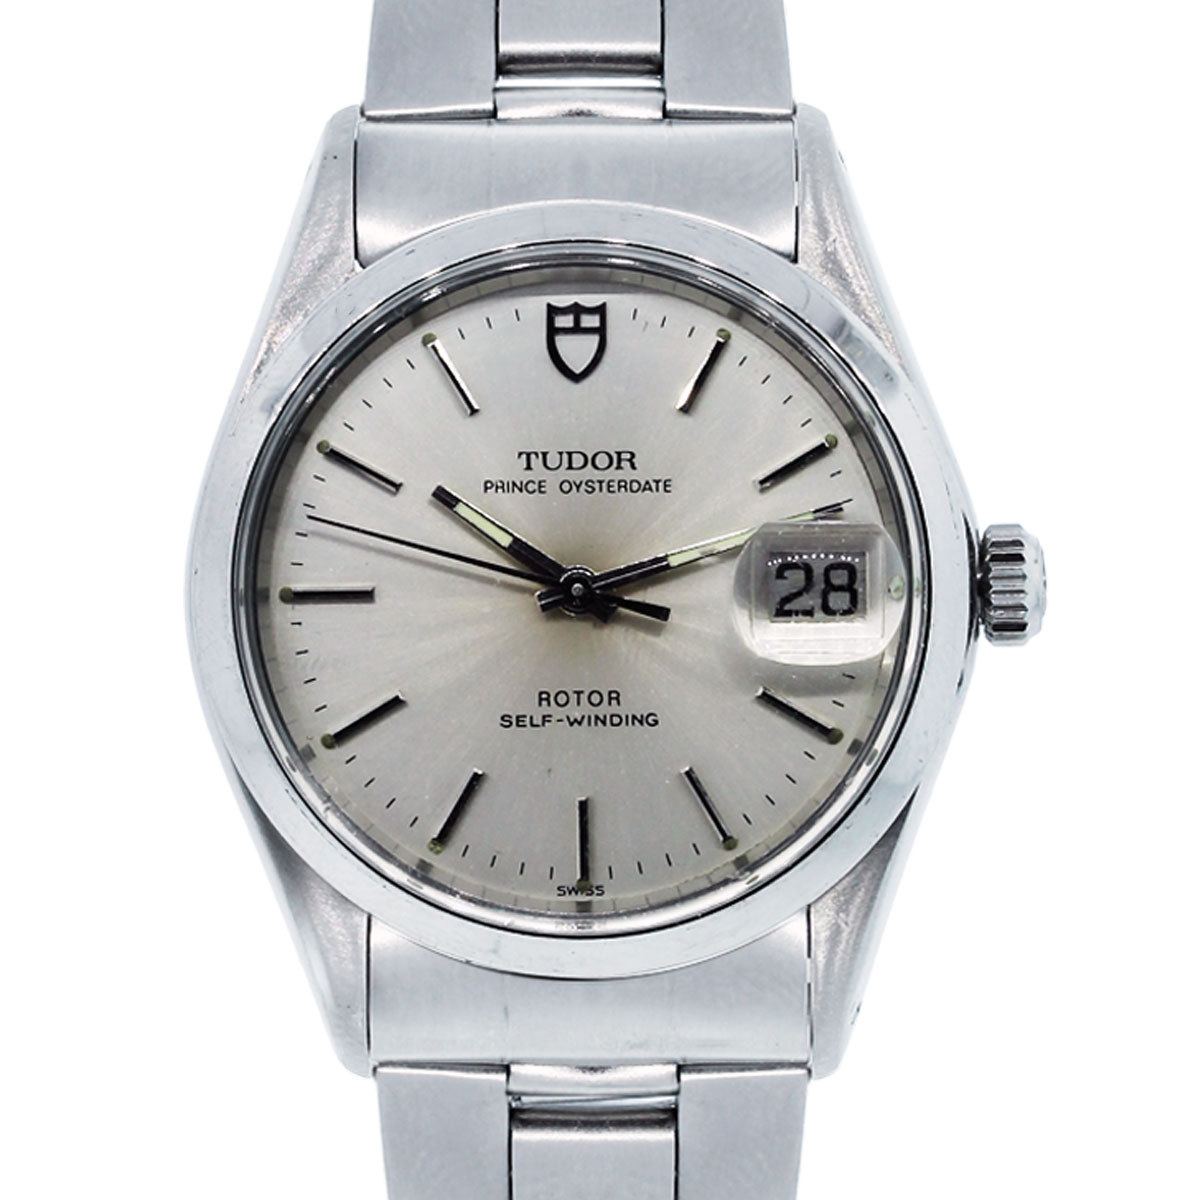 Tudor prince oysterdate 16352 stainless steel watch for Stainless watches